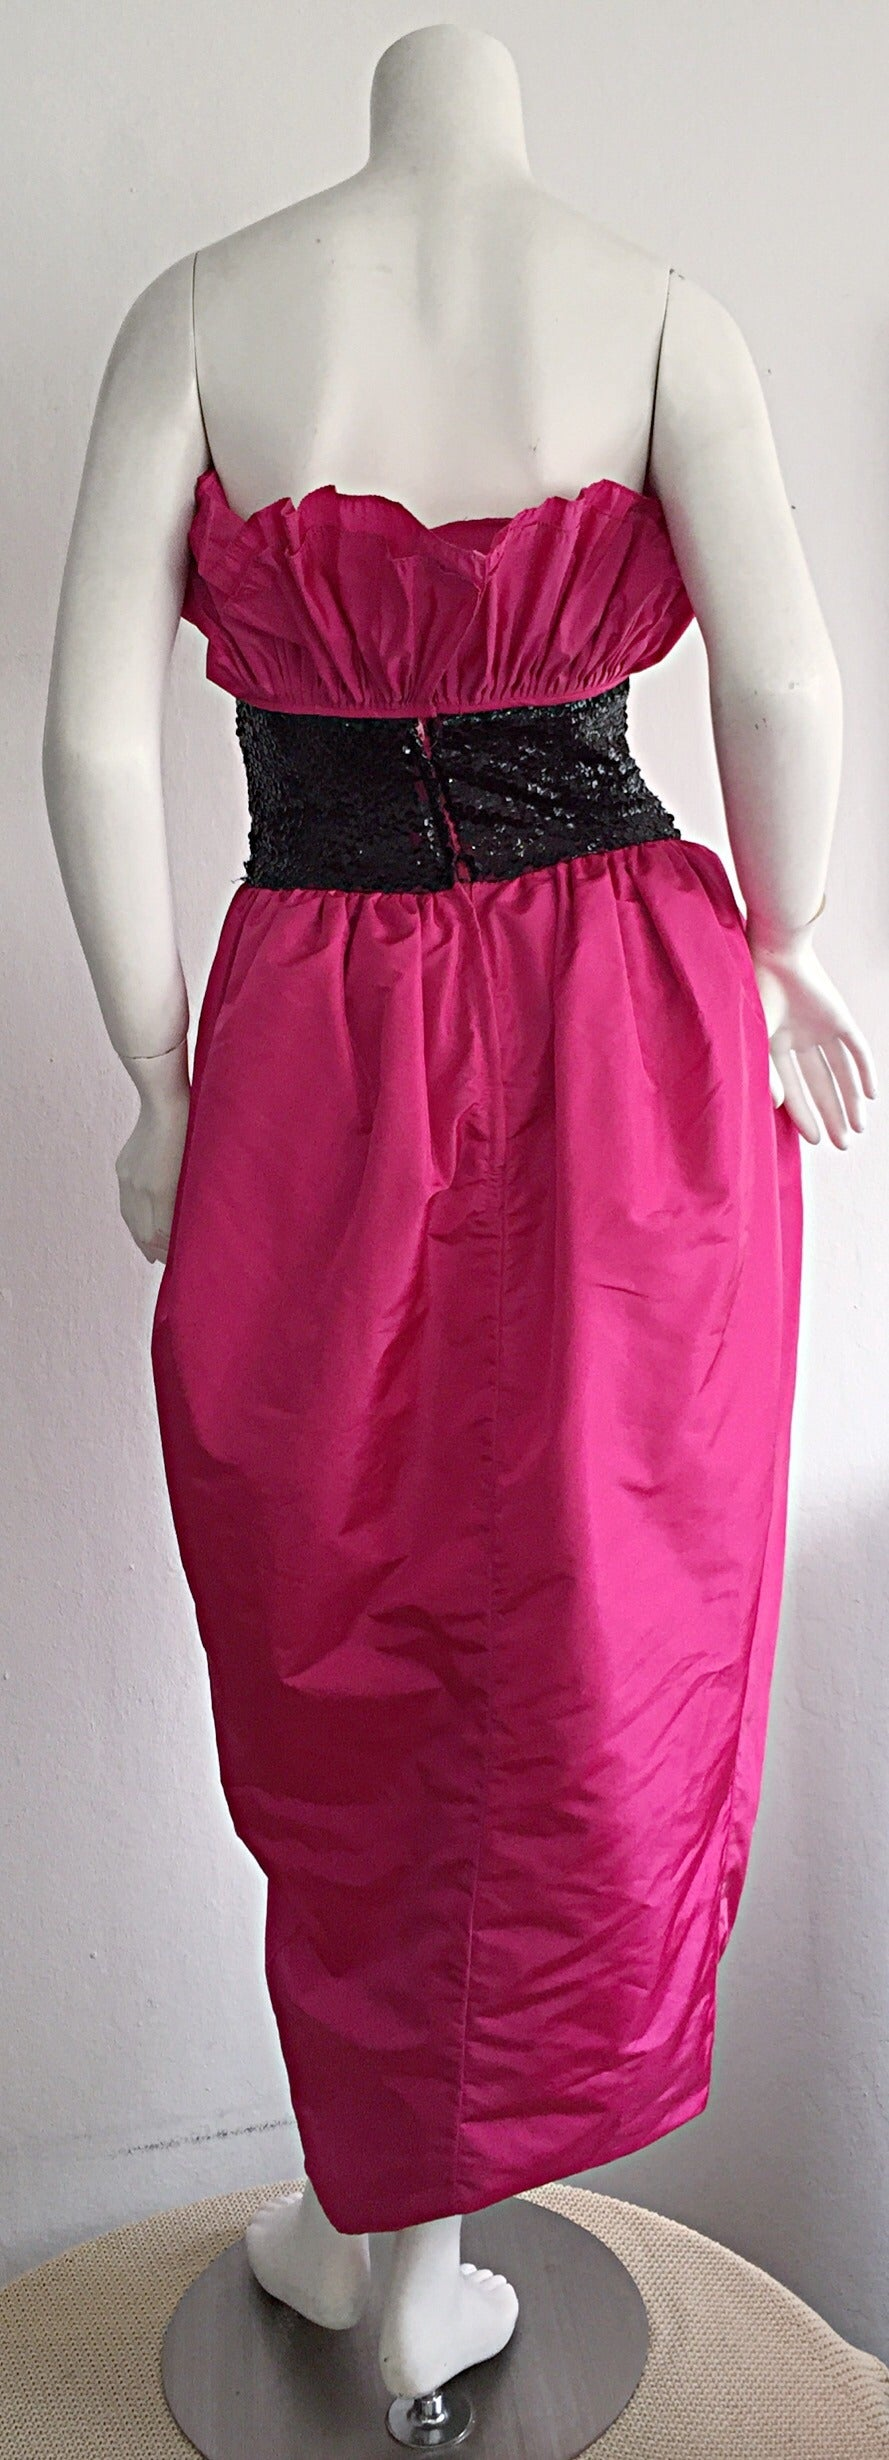 Incredible Vintage Victor Costa for Neiman Marcus Hot Pink Origami Tulip Dress For Sale 2